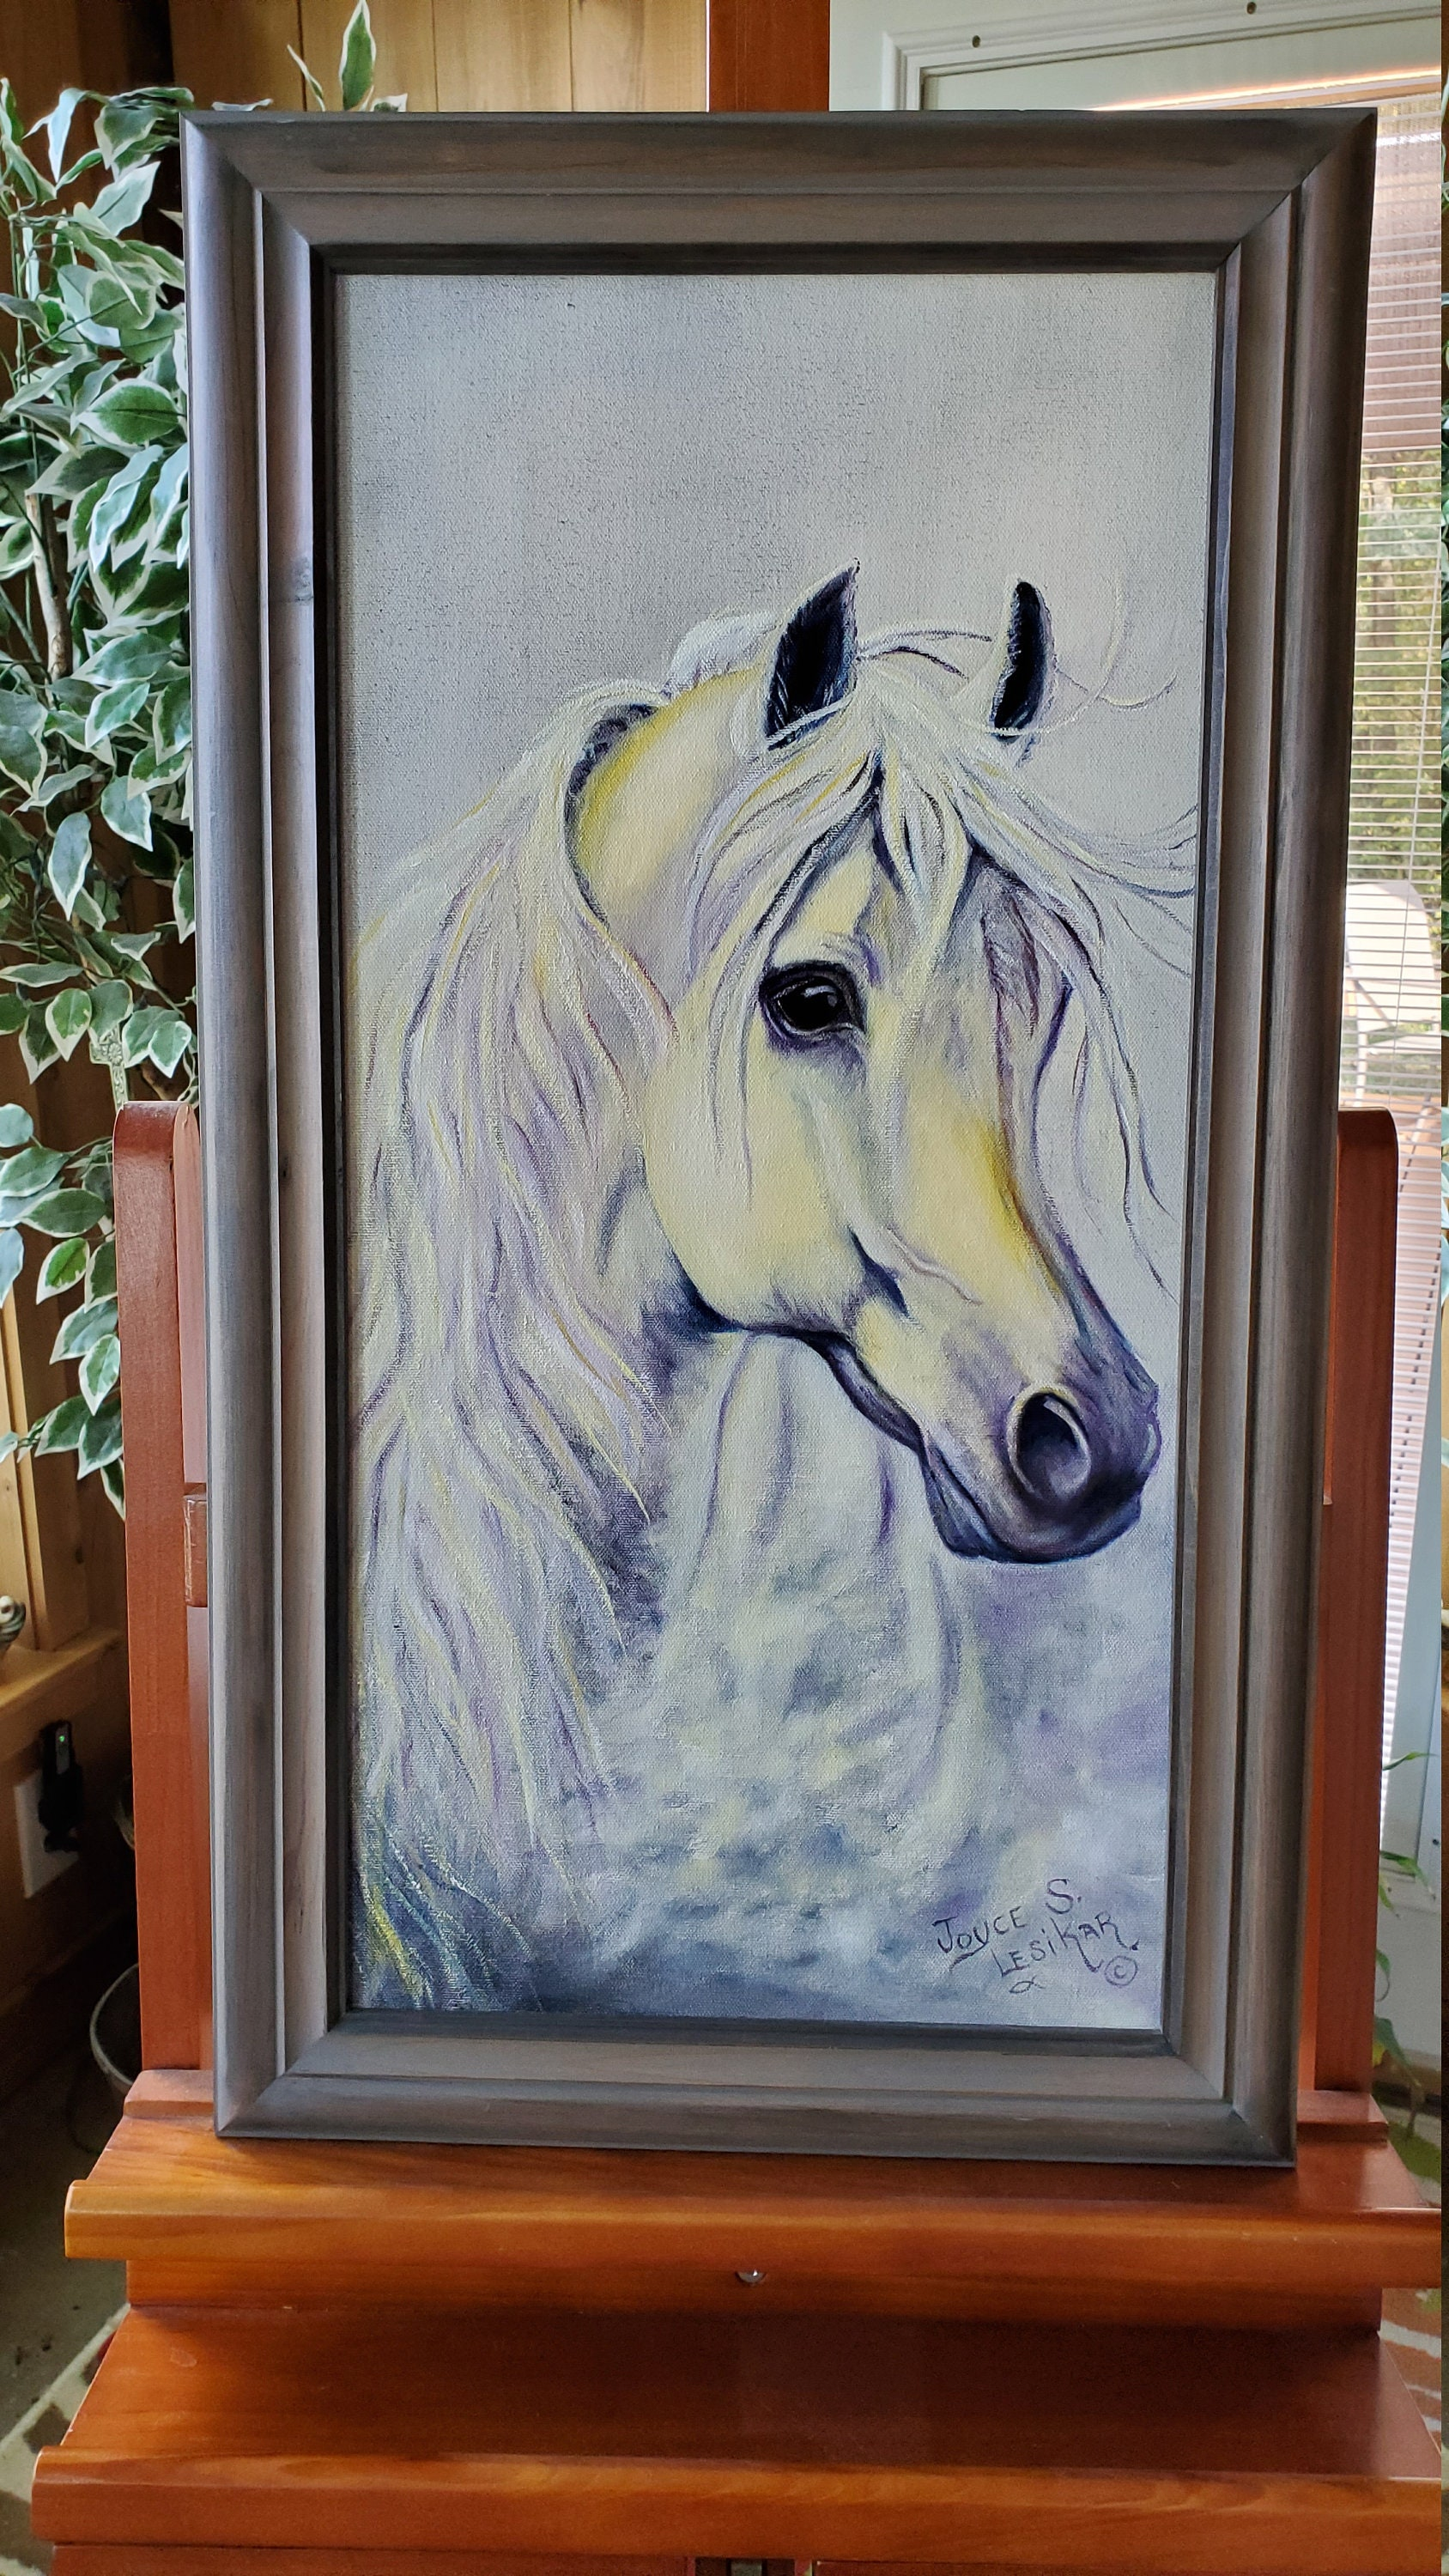 Rainbow Horse A Realistic Oil Painting On Canvas Of A White Horse